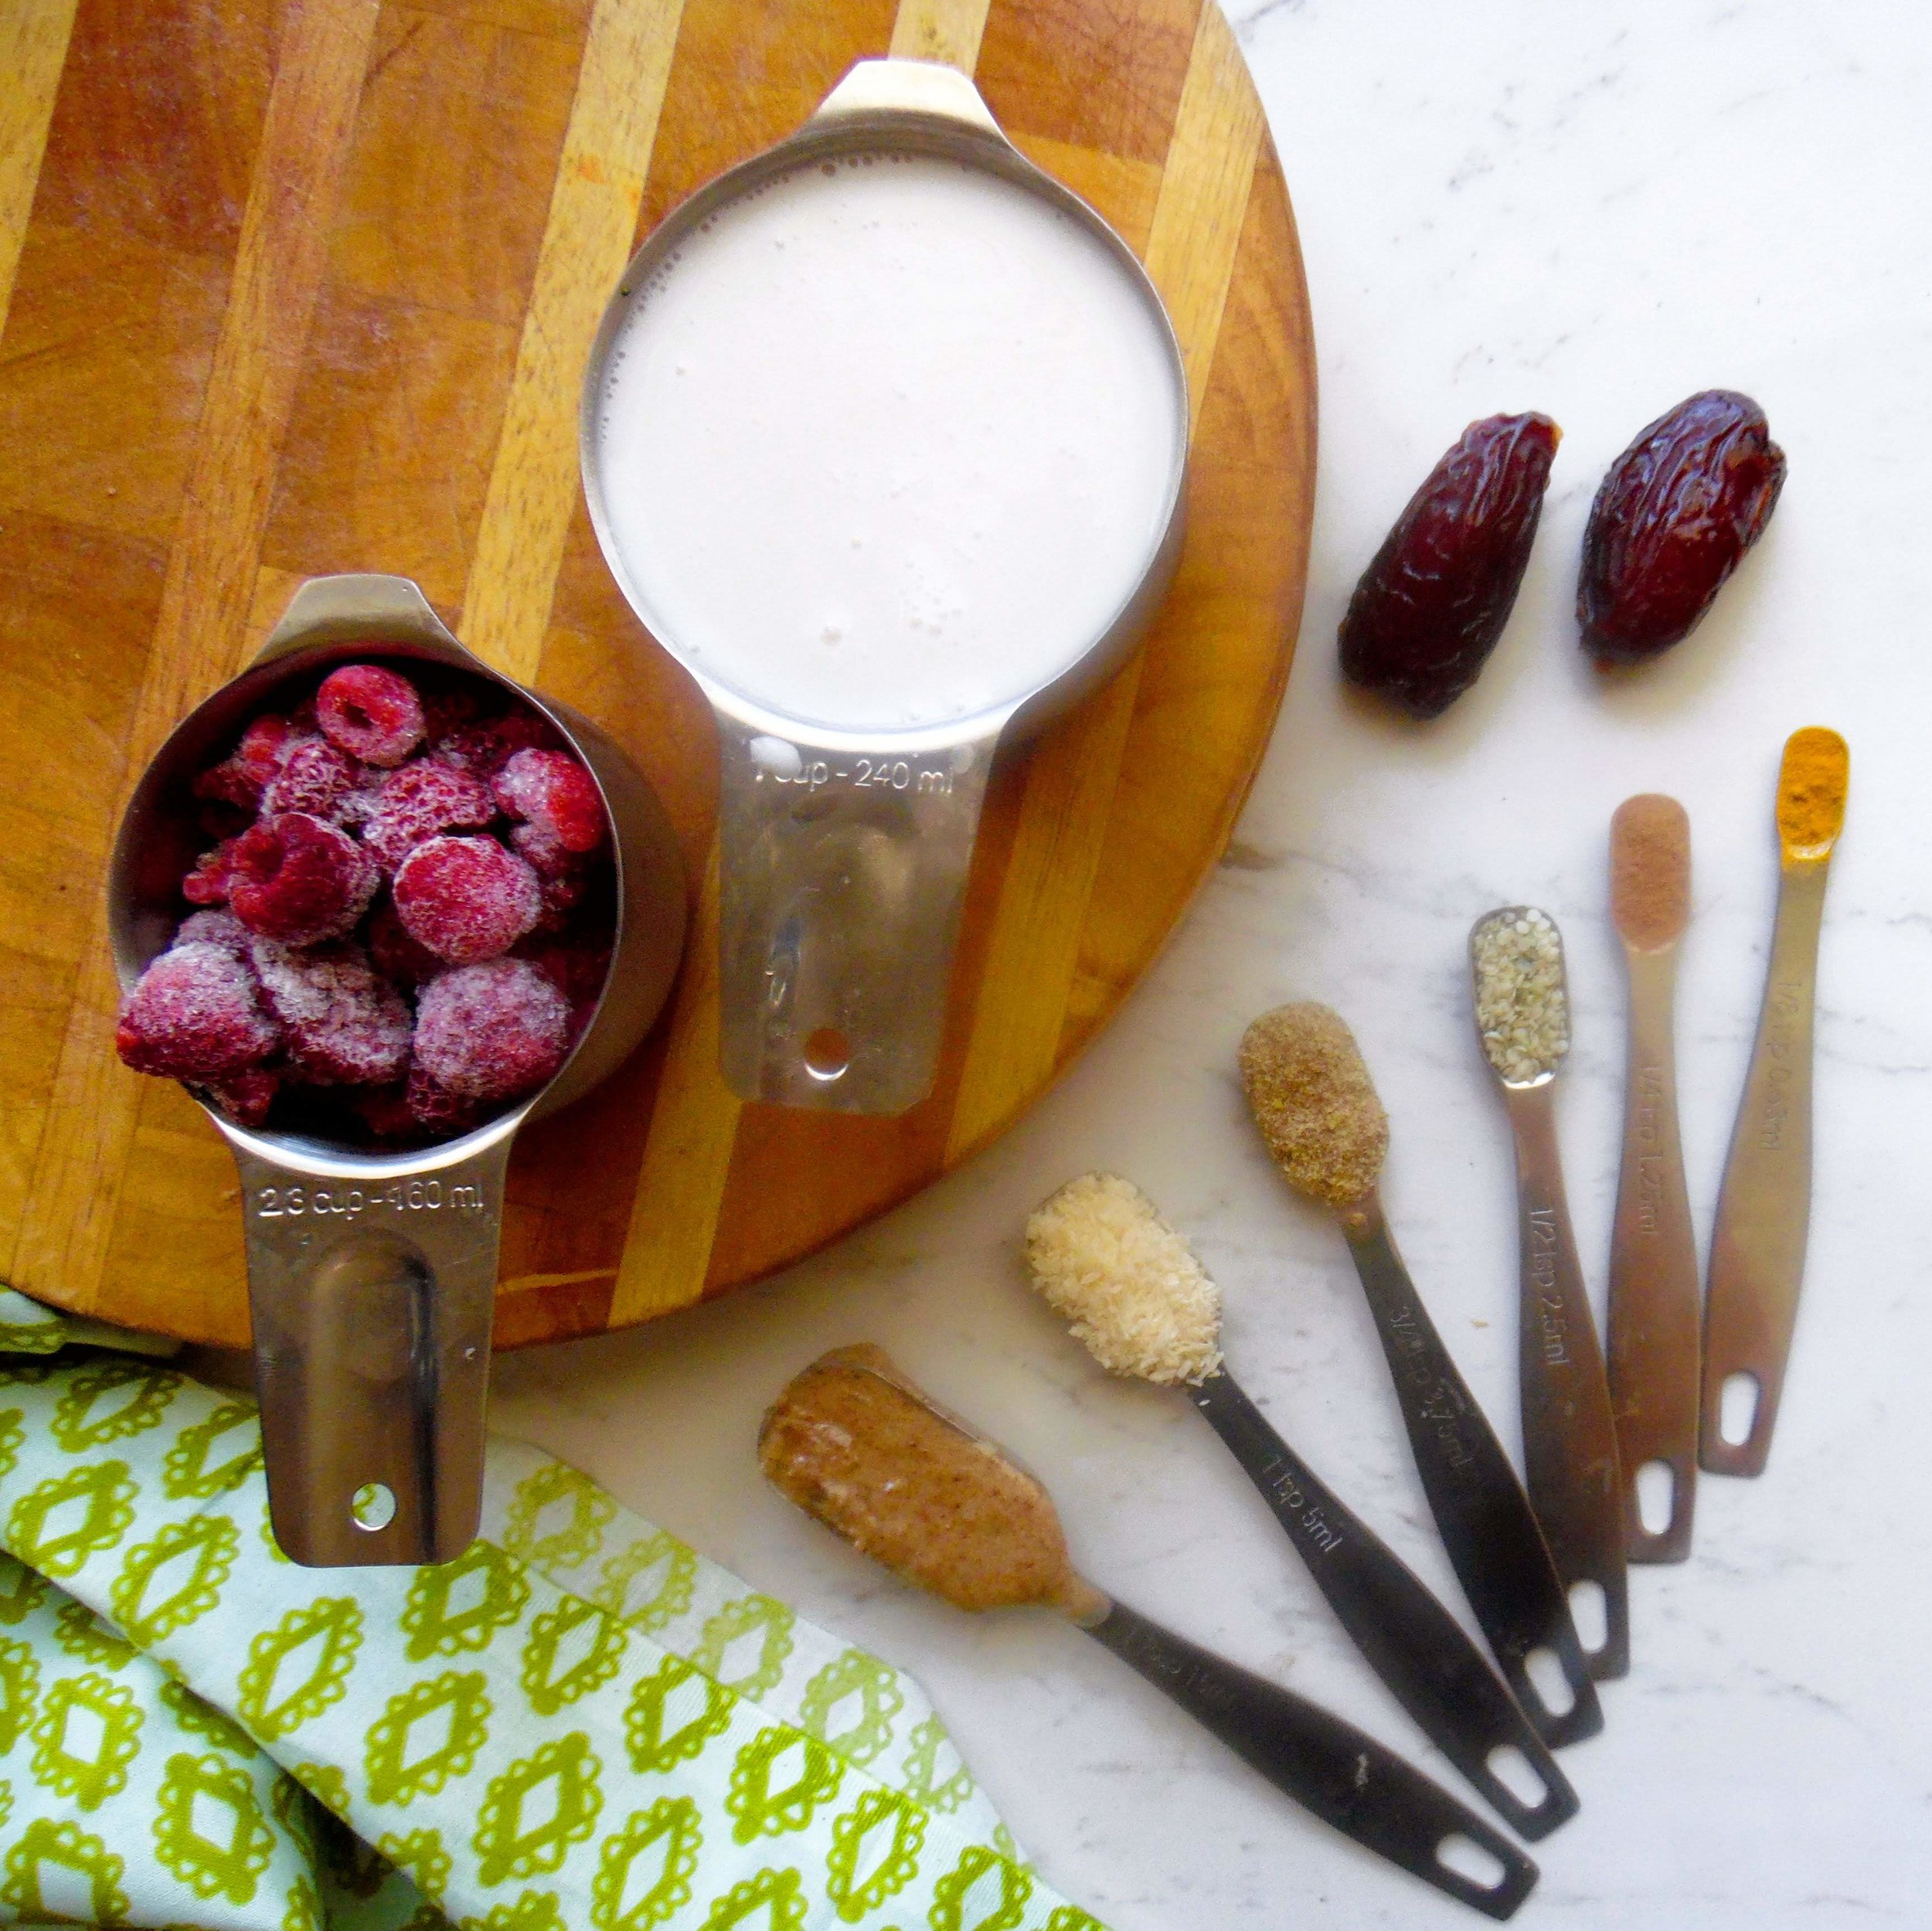 I love this set of measuring spoons and cups. They are perfect to make this superfood smoothie.